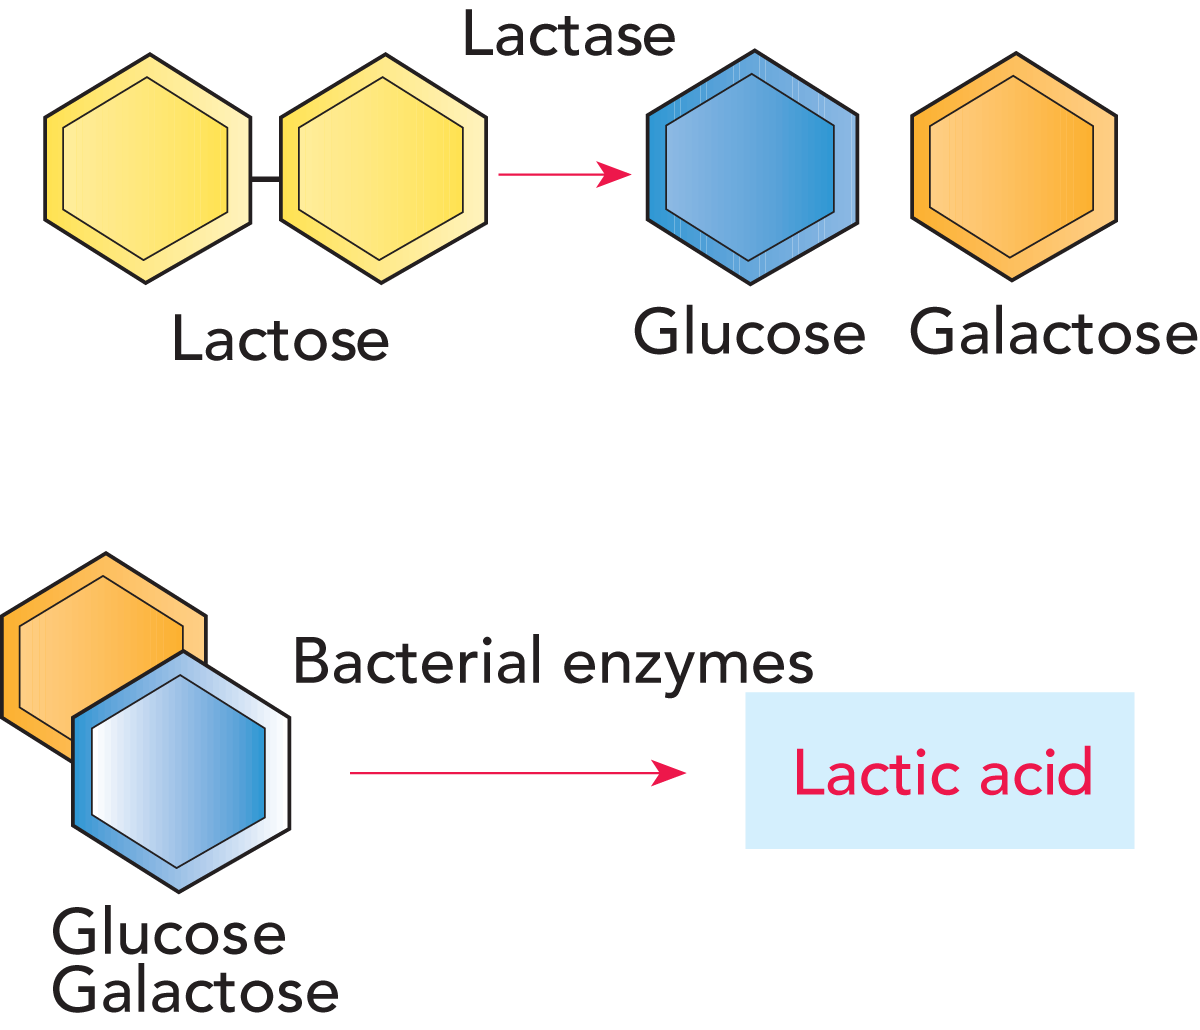 The Chemistry Of Milk Dairy Processing Handbook Parts Can Be Identified Through Formula Shown In Diagram Fig 242 Breakdown Lactose By